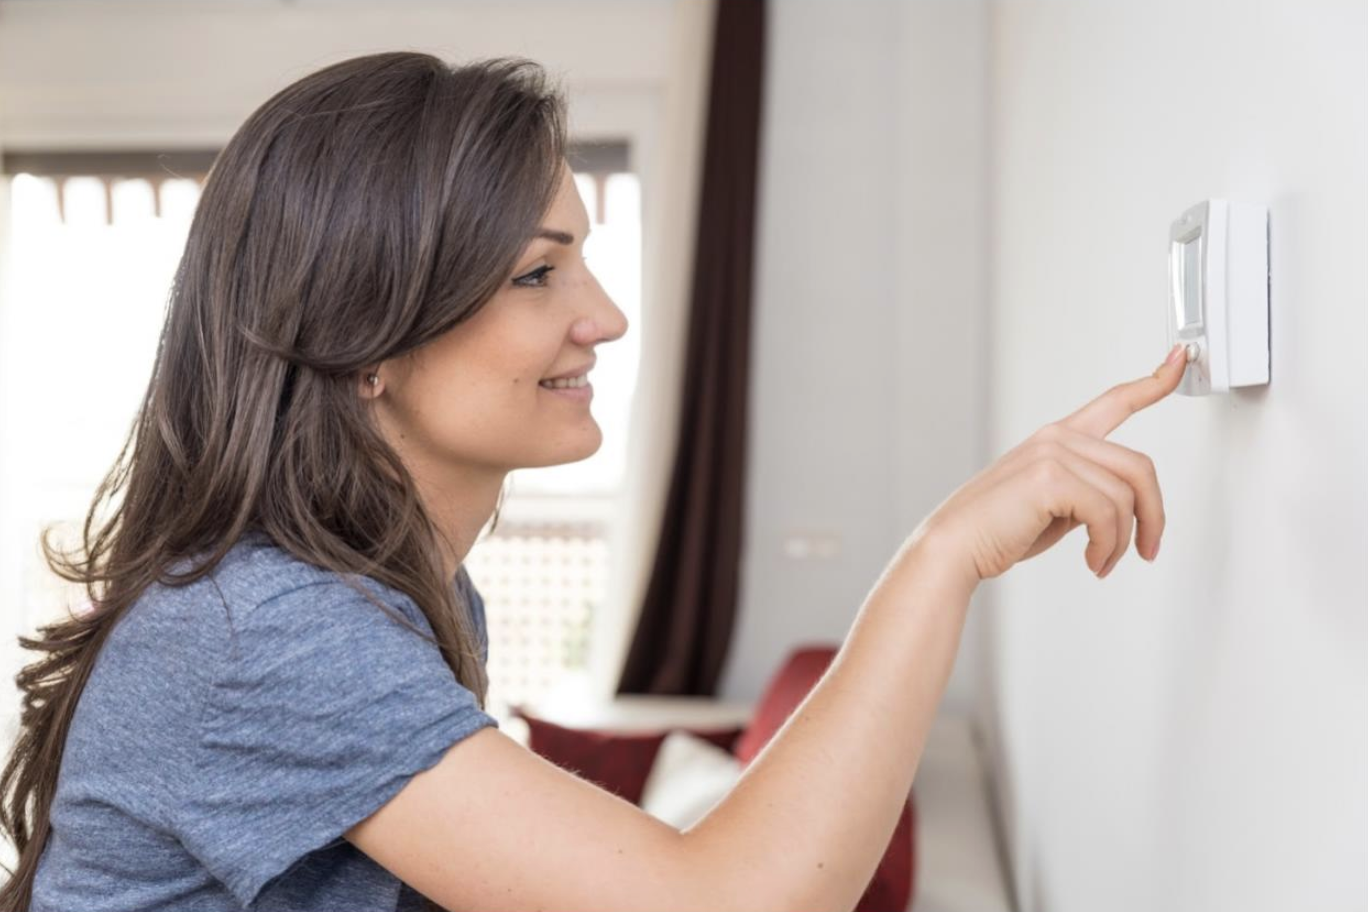 A resident in San Diego adjusts her thermostat when returning from work to effectively manage her energy usage and keep energy bills low.